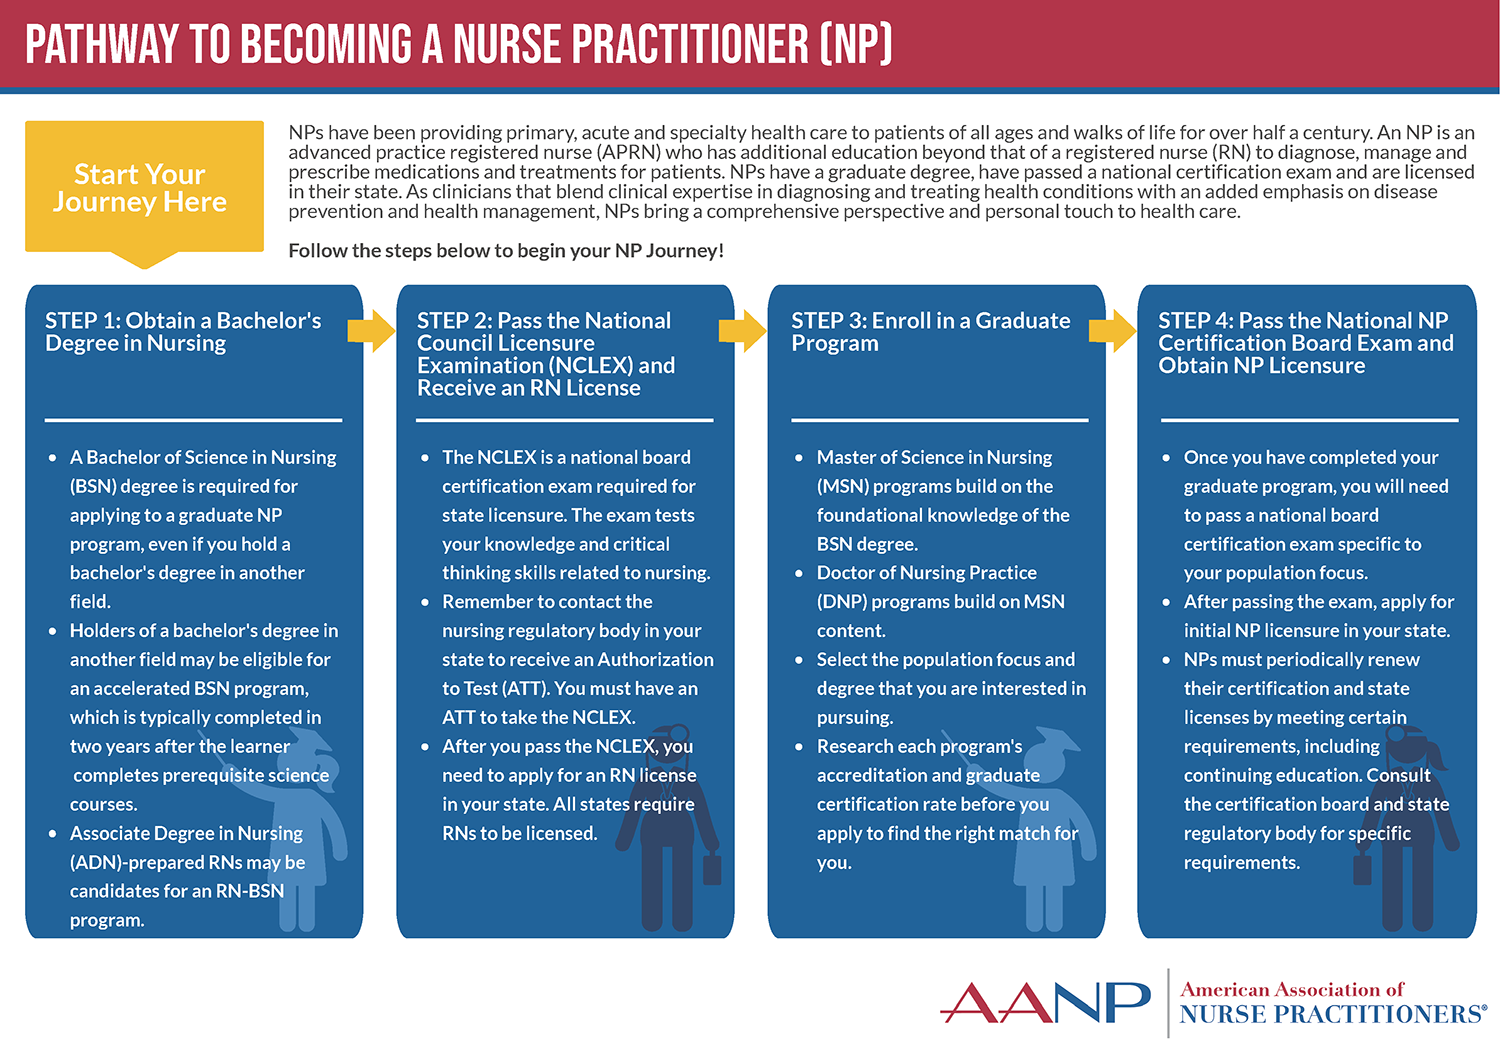 An infographic explains the pathway to becoming an NP, from a bachelor's degree in nursing to passing the NP licensure exam